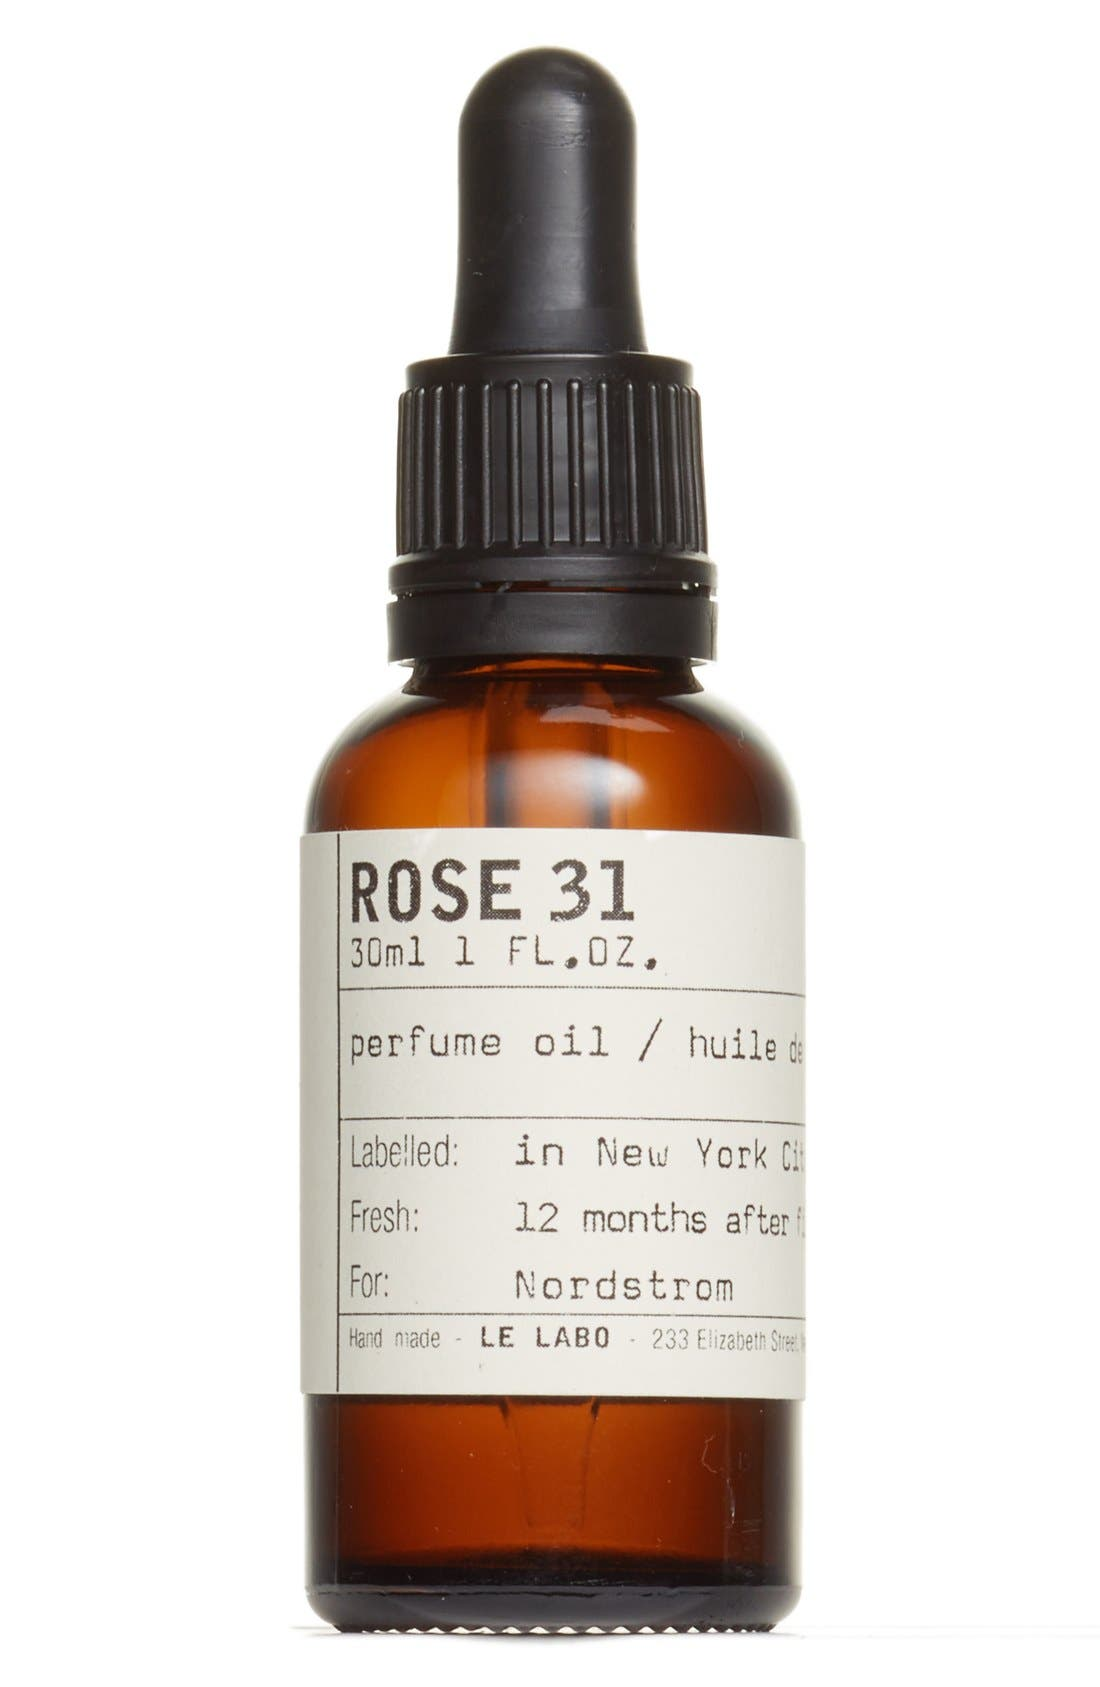 Le Labo 'Rose 31' Perfume Oil